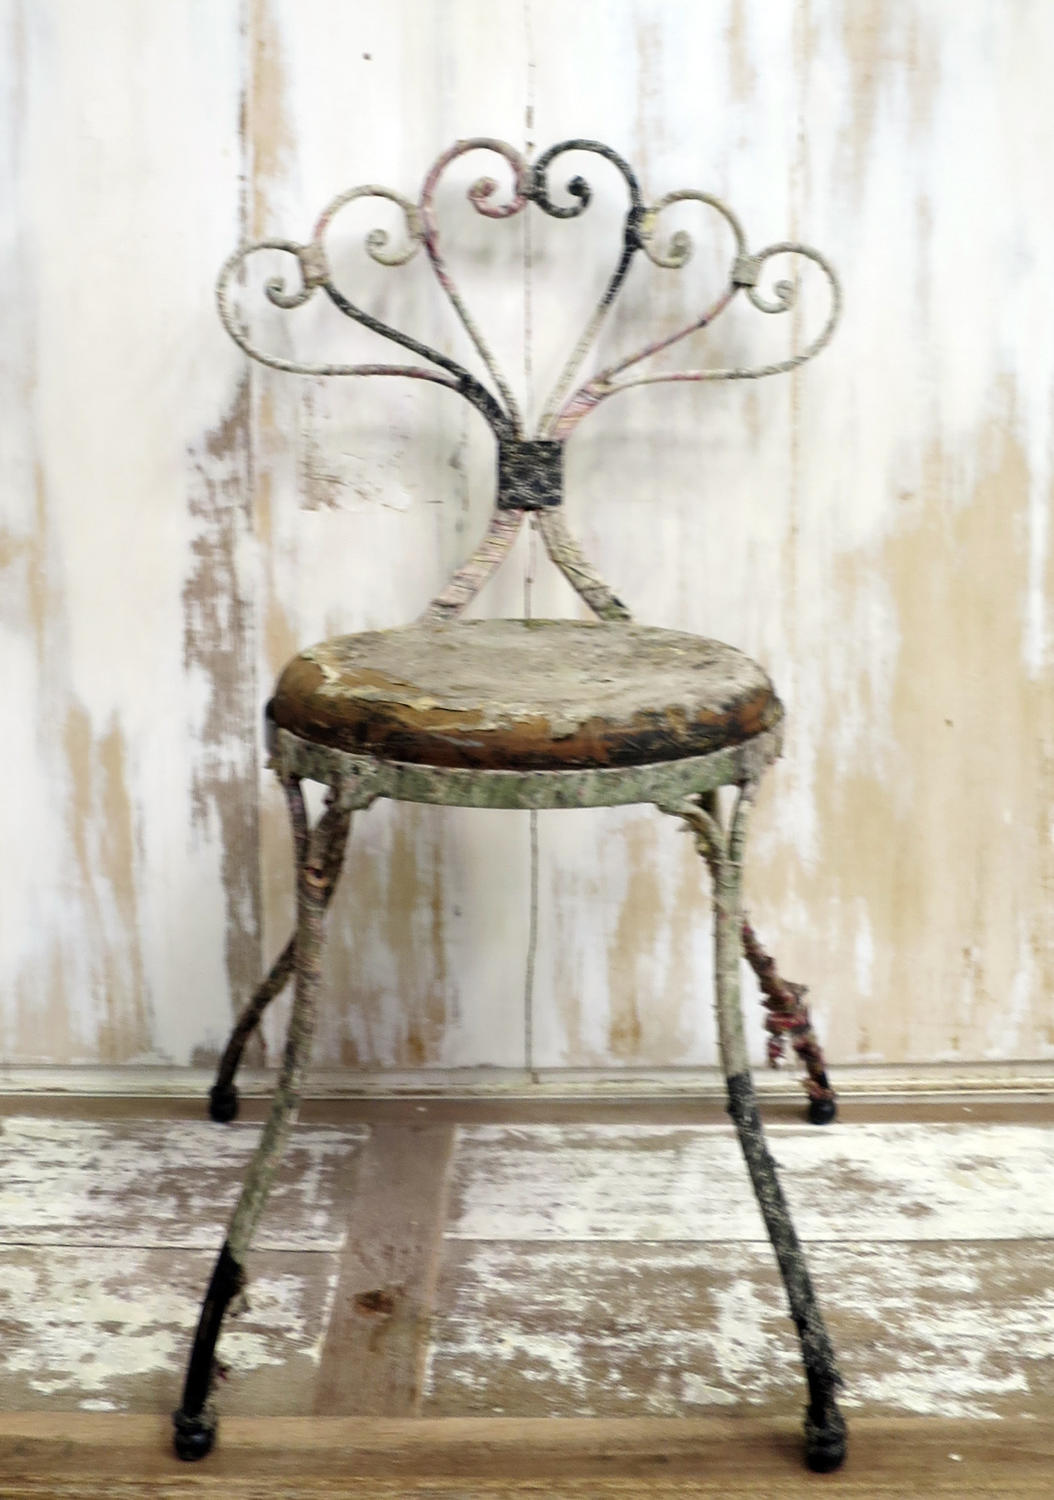 19th c French Iron Chair bound with old fabrics